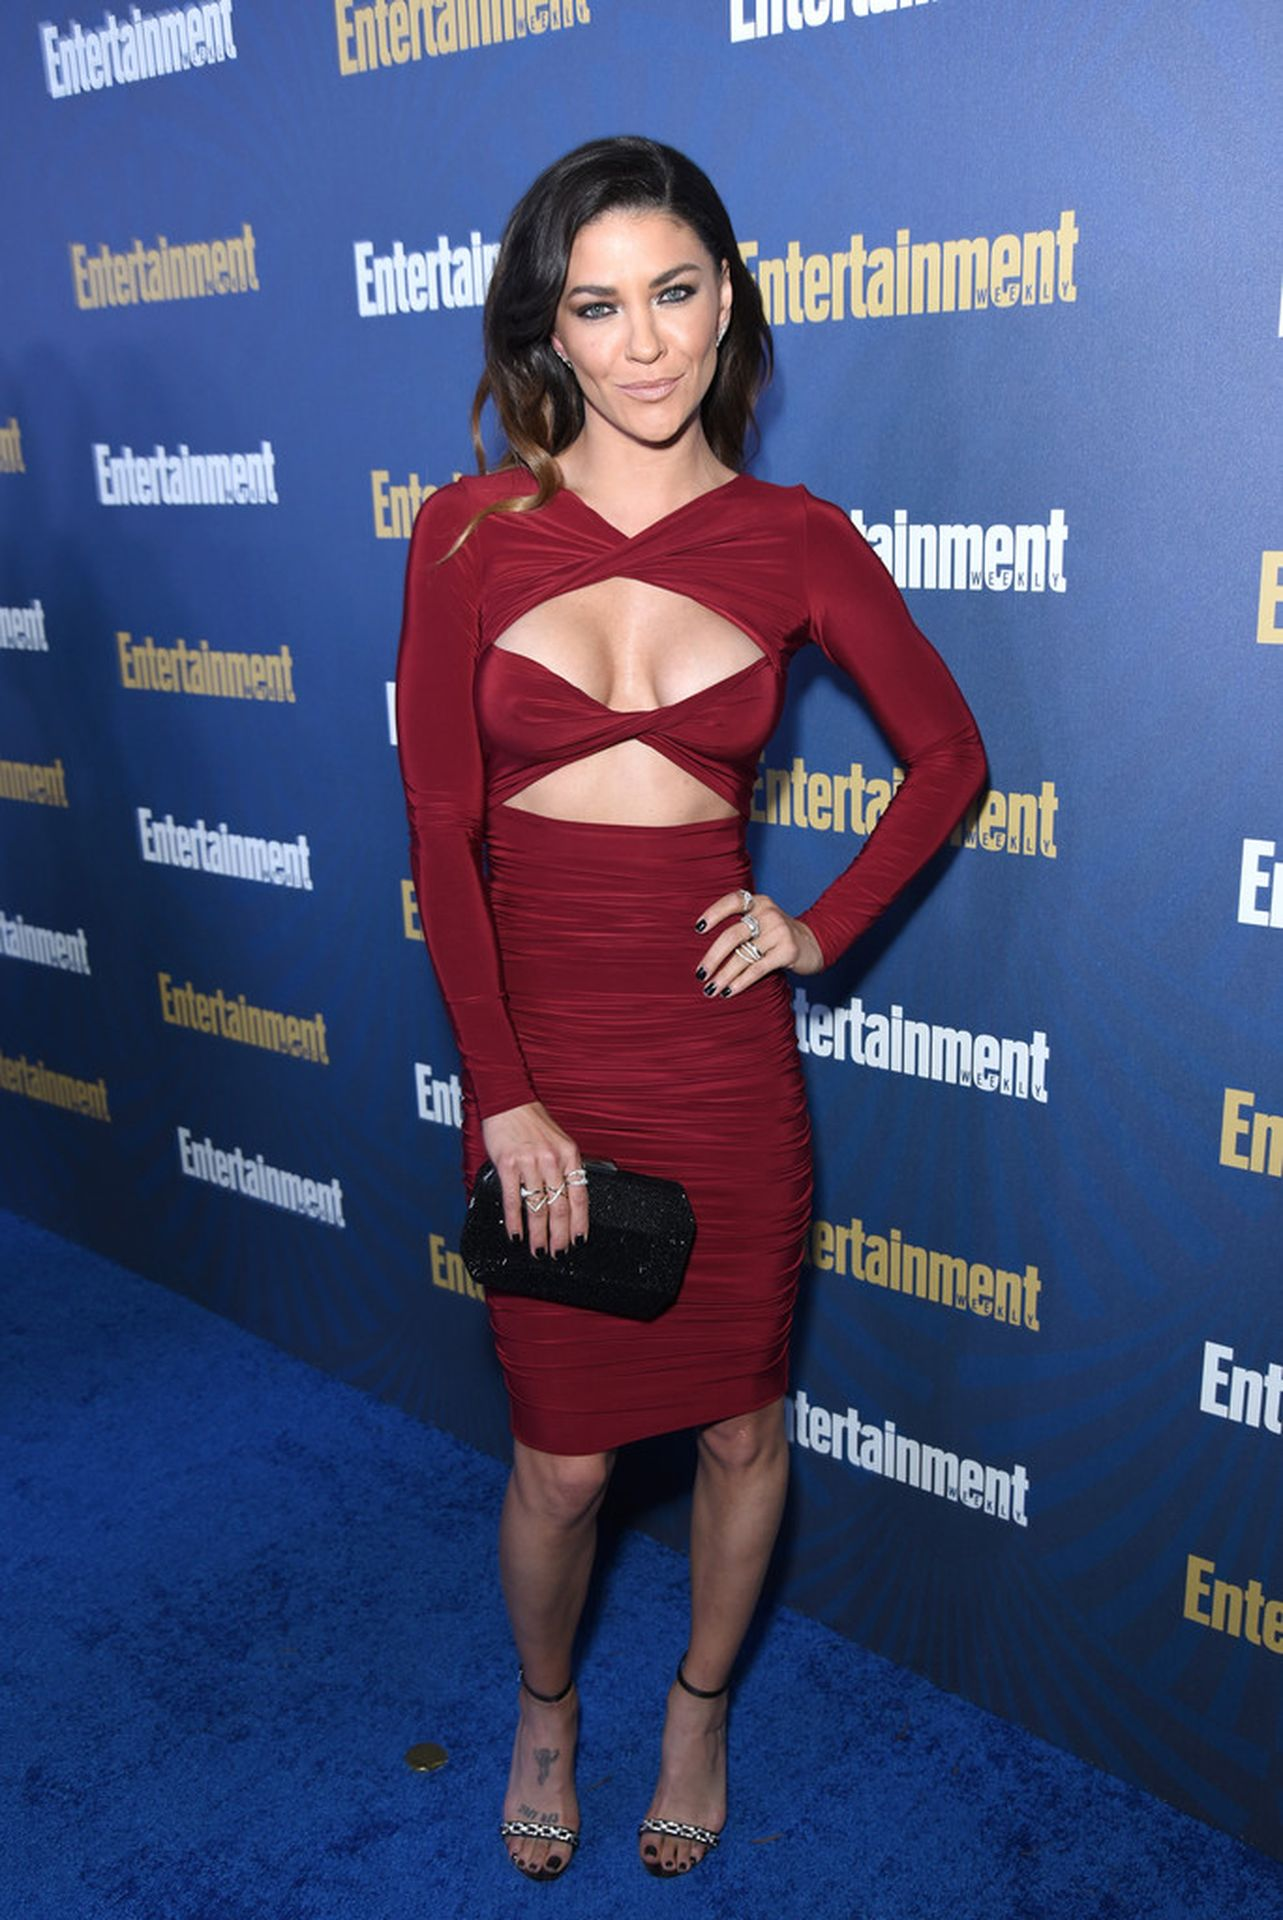 Jessica Szohr Shows Her Cleavage At The Entertainment Weekly Pre Sag Awards Celebration 0023